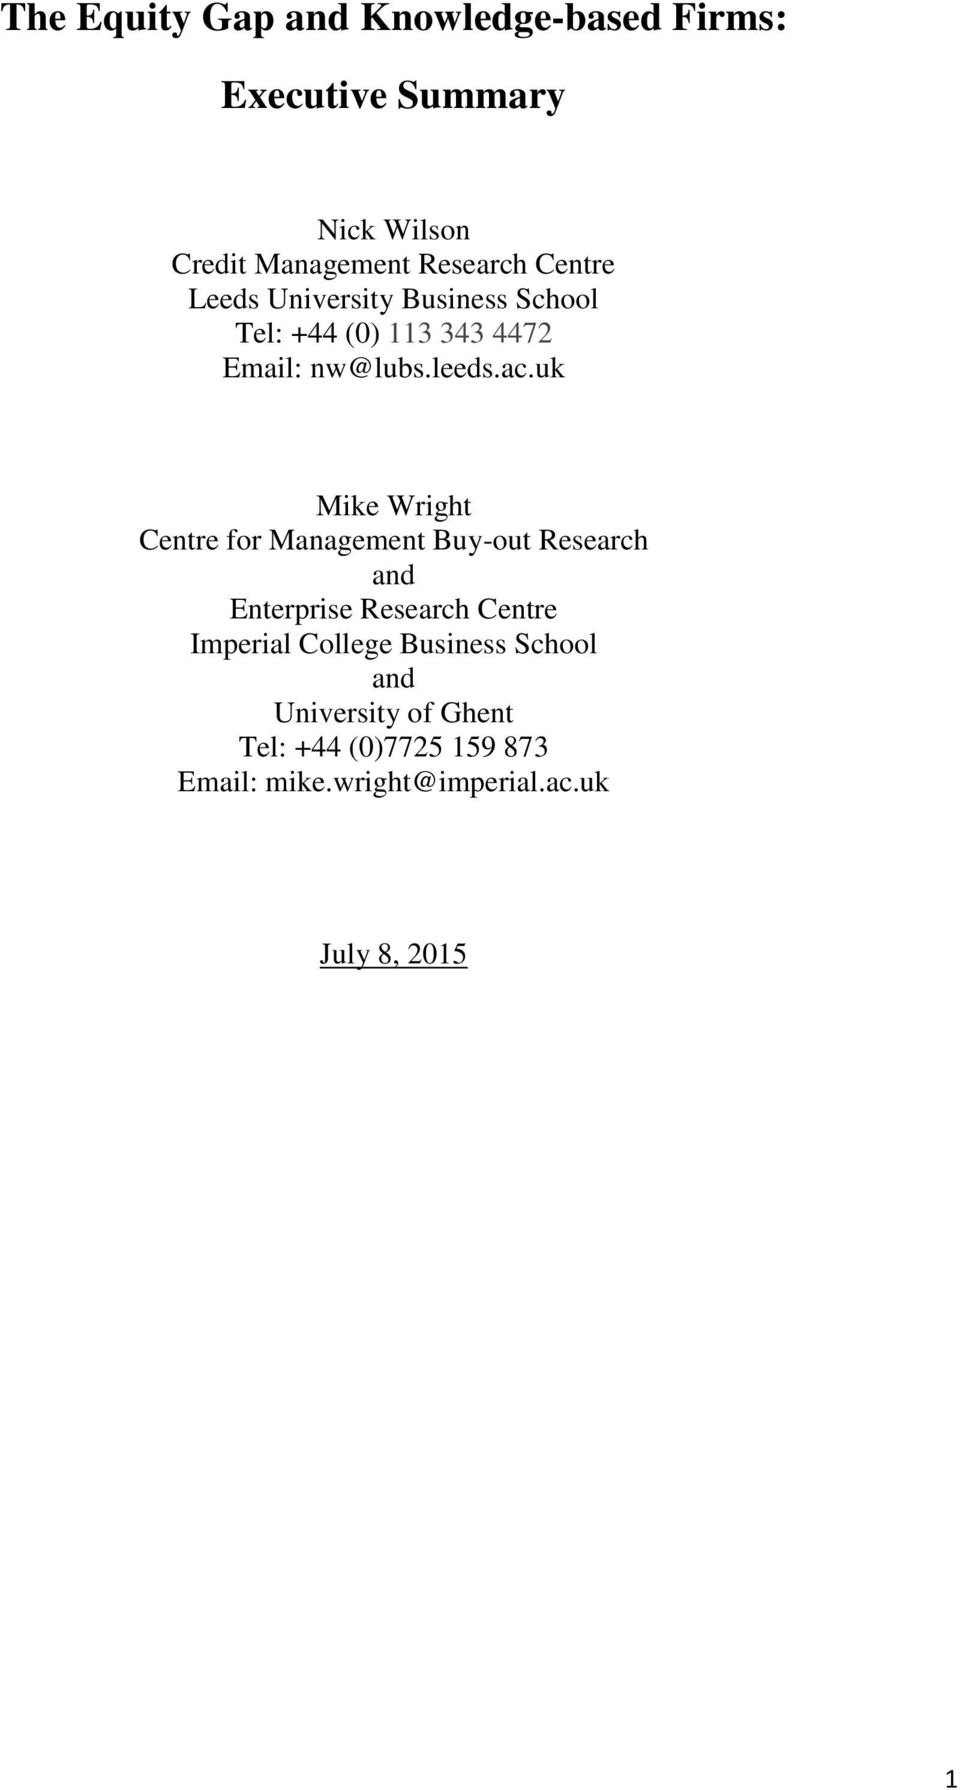 uk Mike Wright Centre for Management Buy-out Research and Enterprise Research Centre Imperial